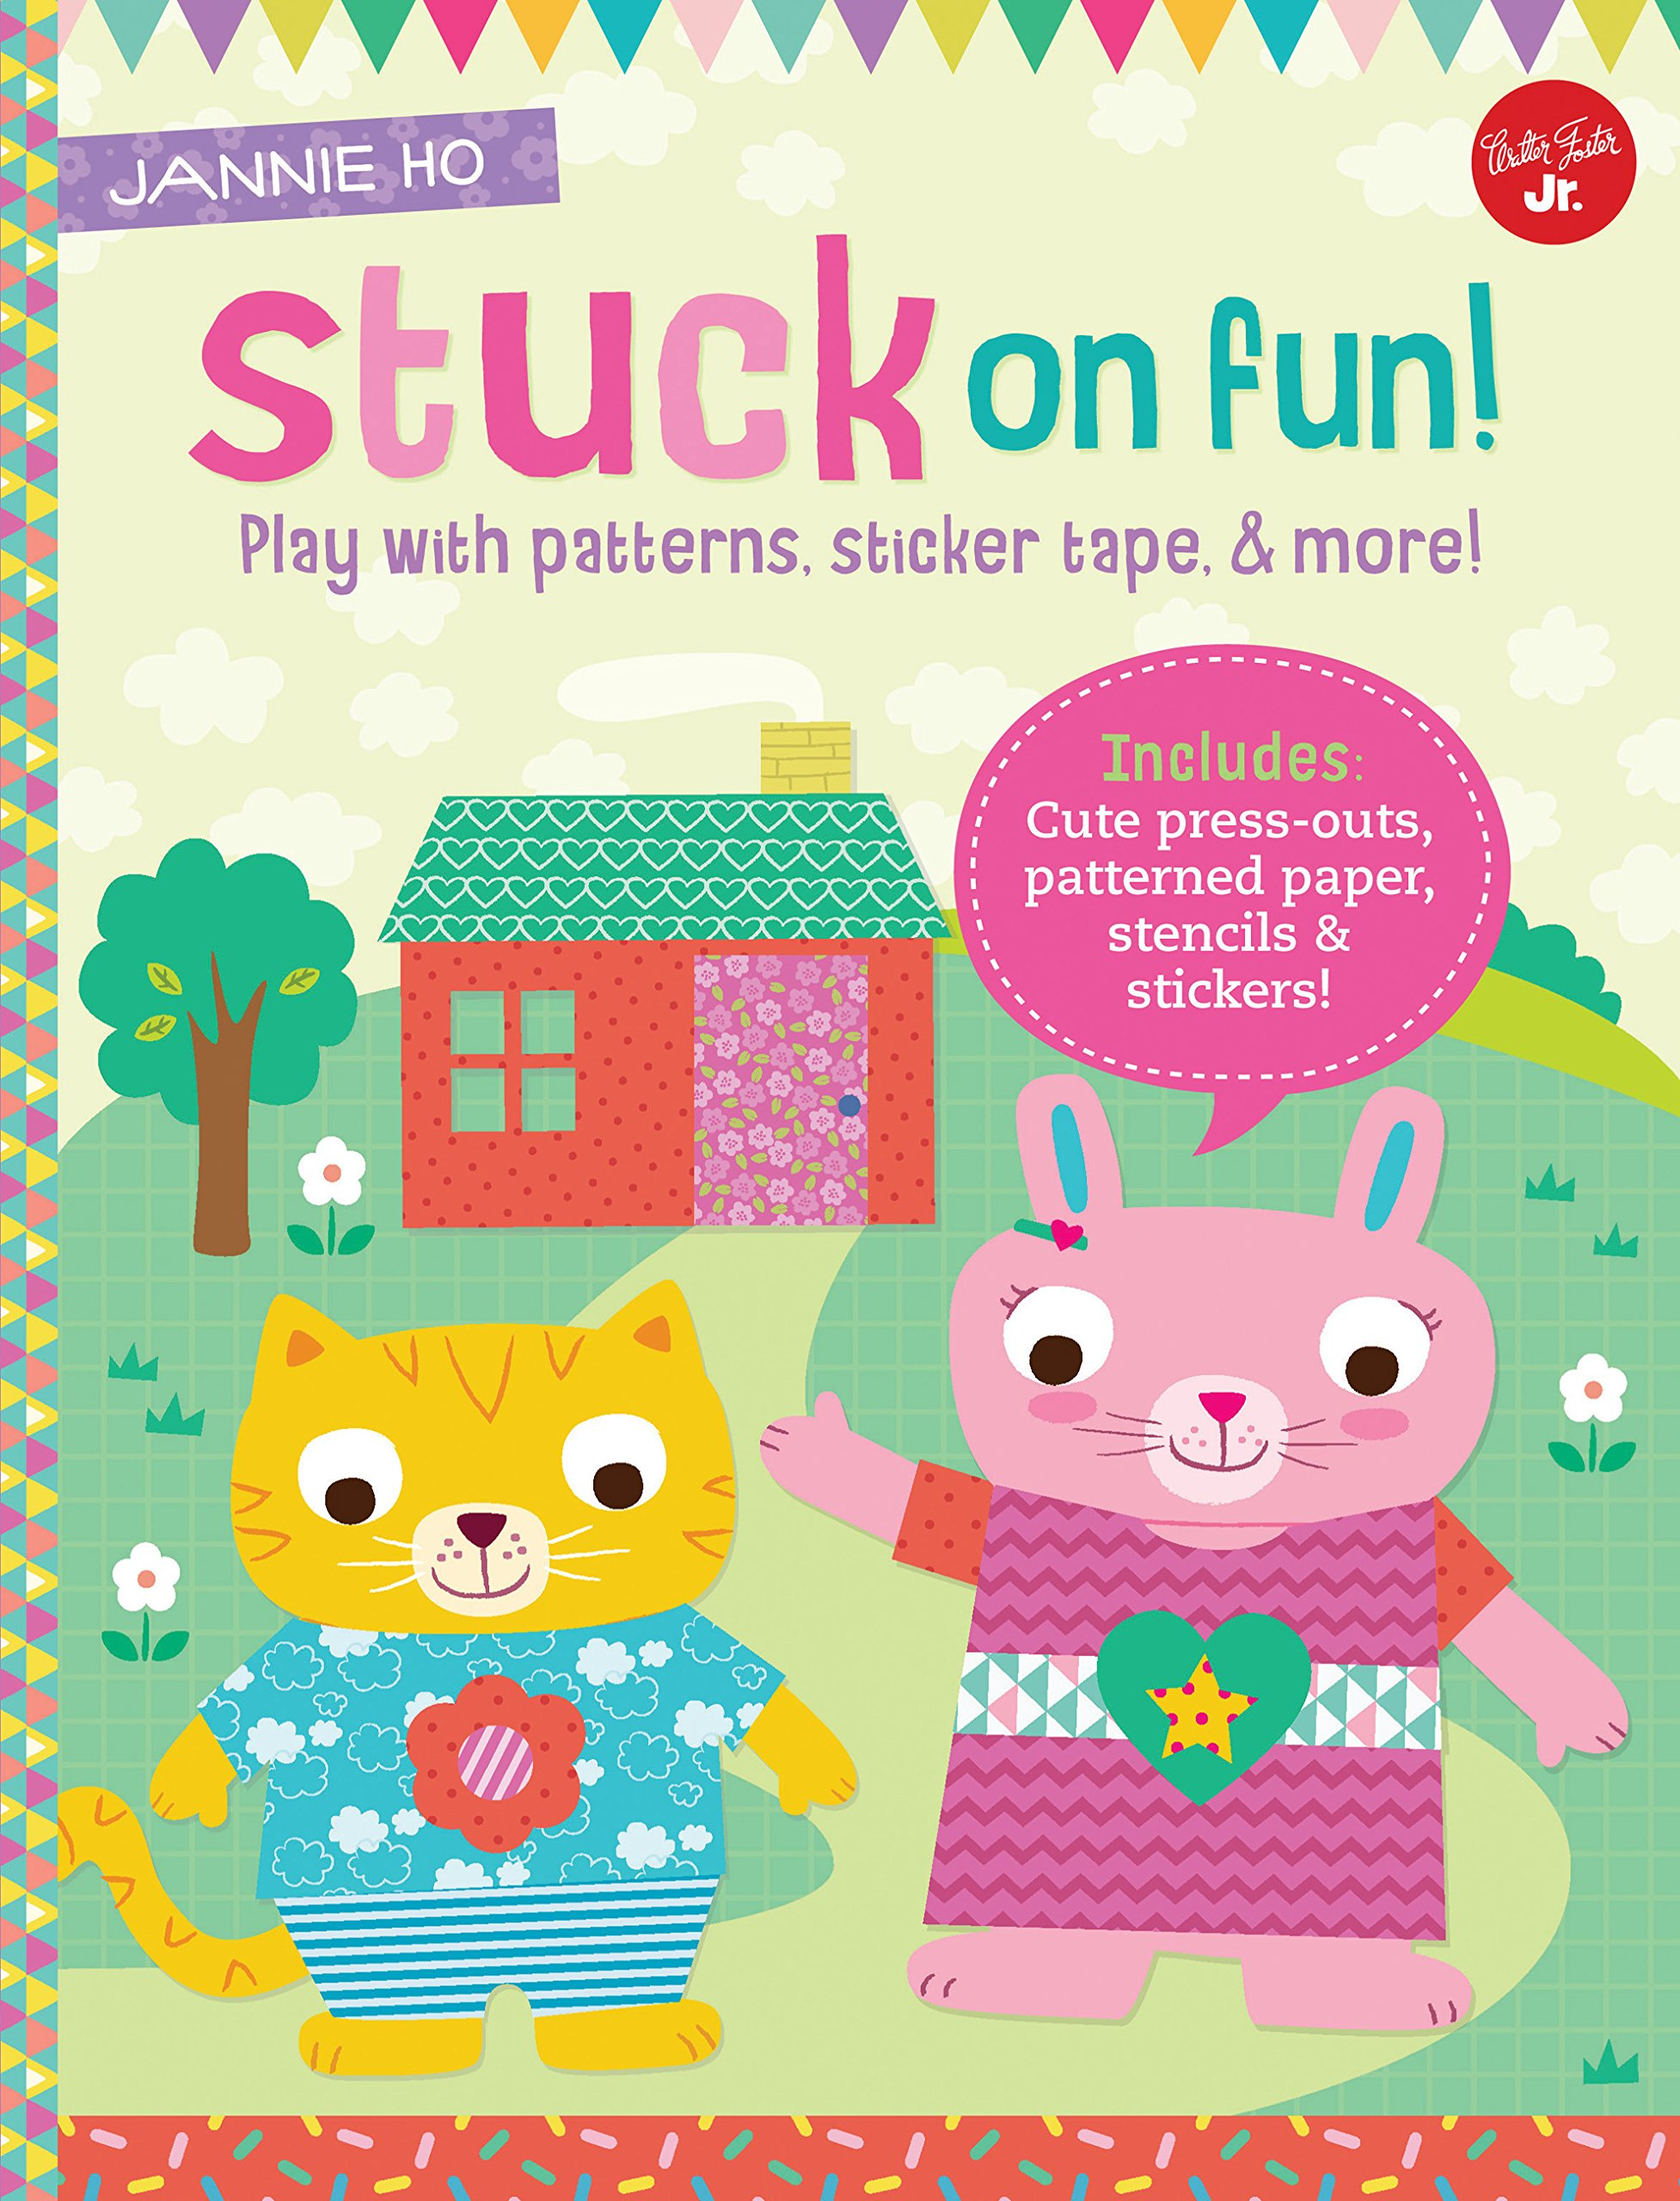 Stuck on Fun!: Play with patterns, sticker tape, and more! Includes: Cute press-outs, patterned paper, stencils & stickers! (Kids Craft Book)